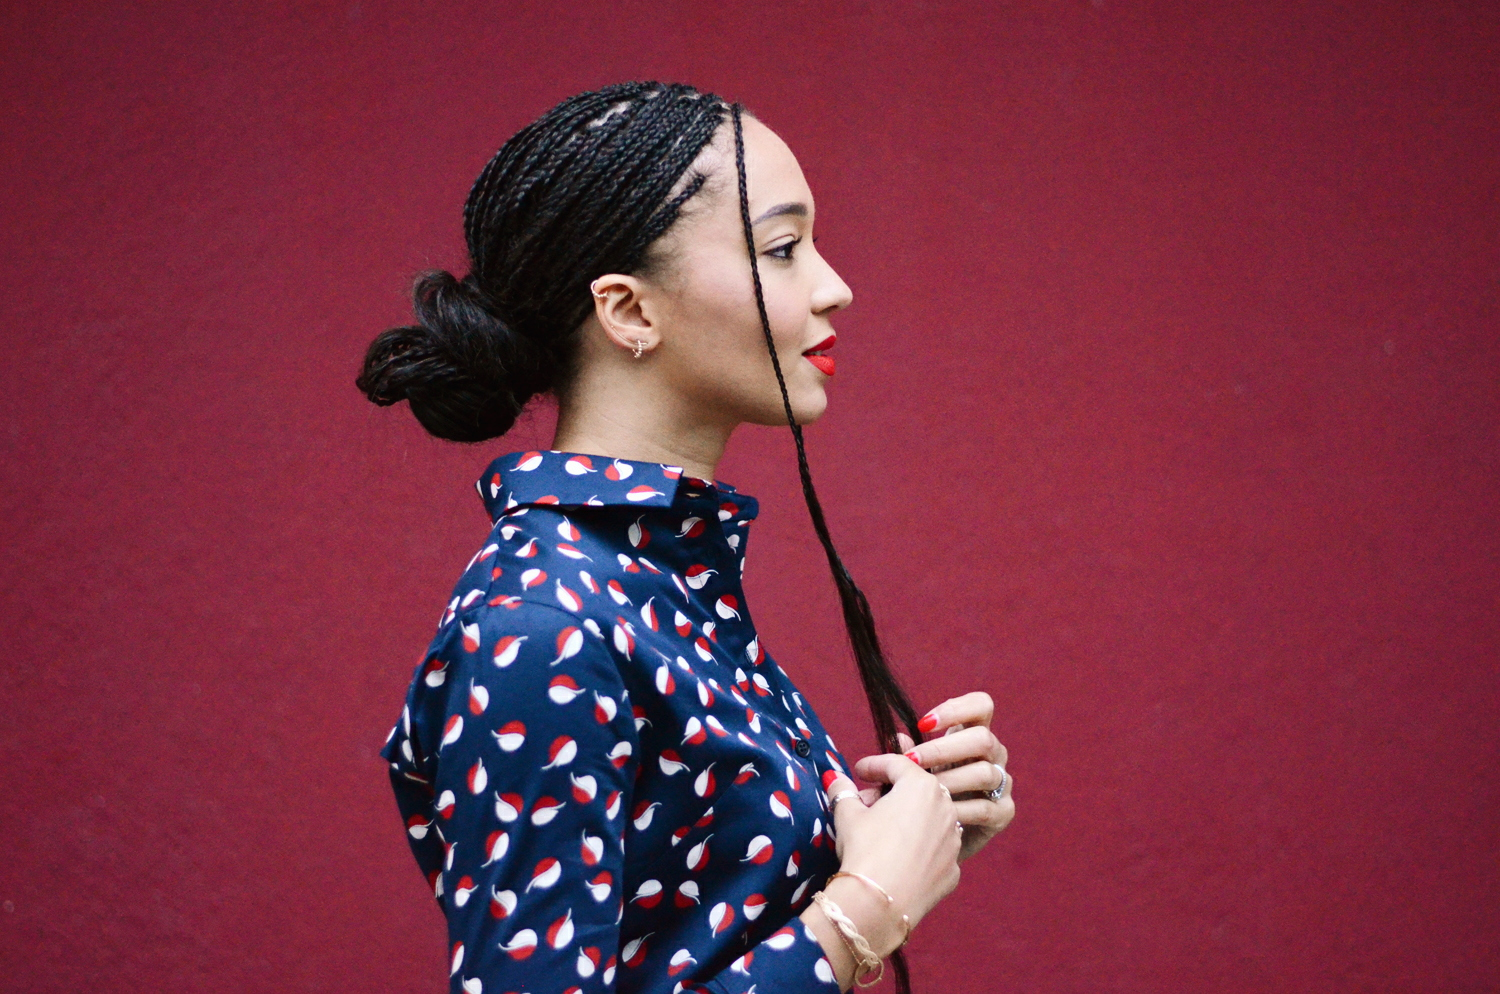 mercredie-blog-mode-fashion-blogger-suisse-geneve-switzerland-box-braids-metisse-ensemble-asos-people-tree-v&a-coton-bio-imprime-chemise1